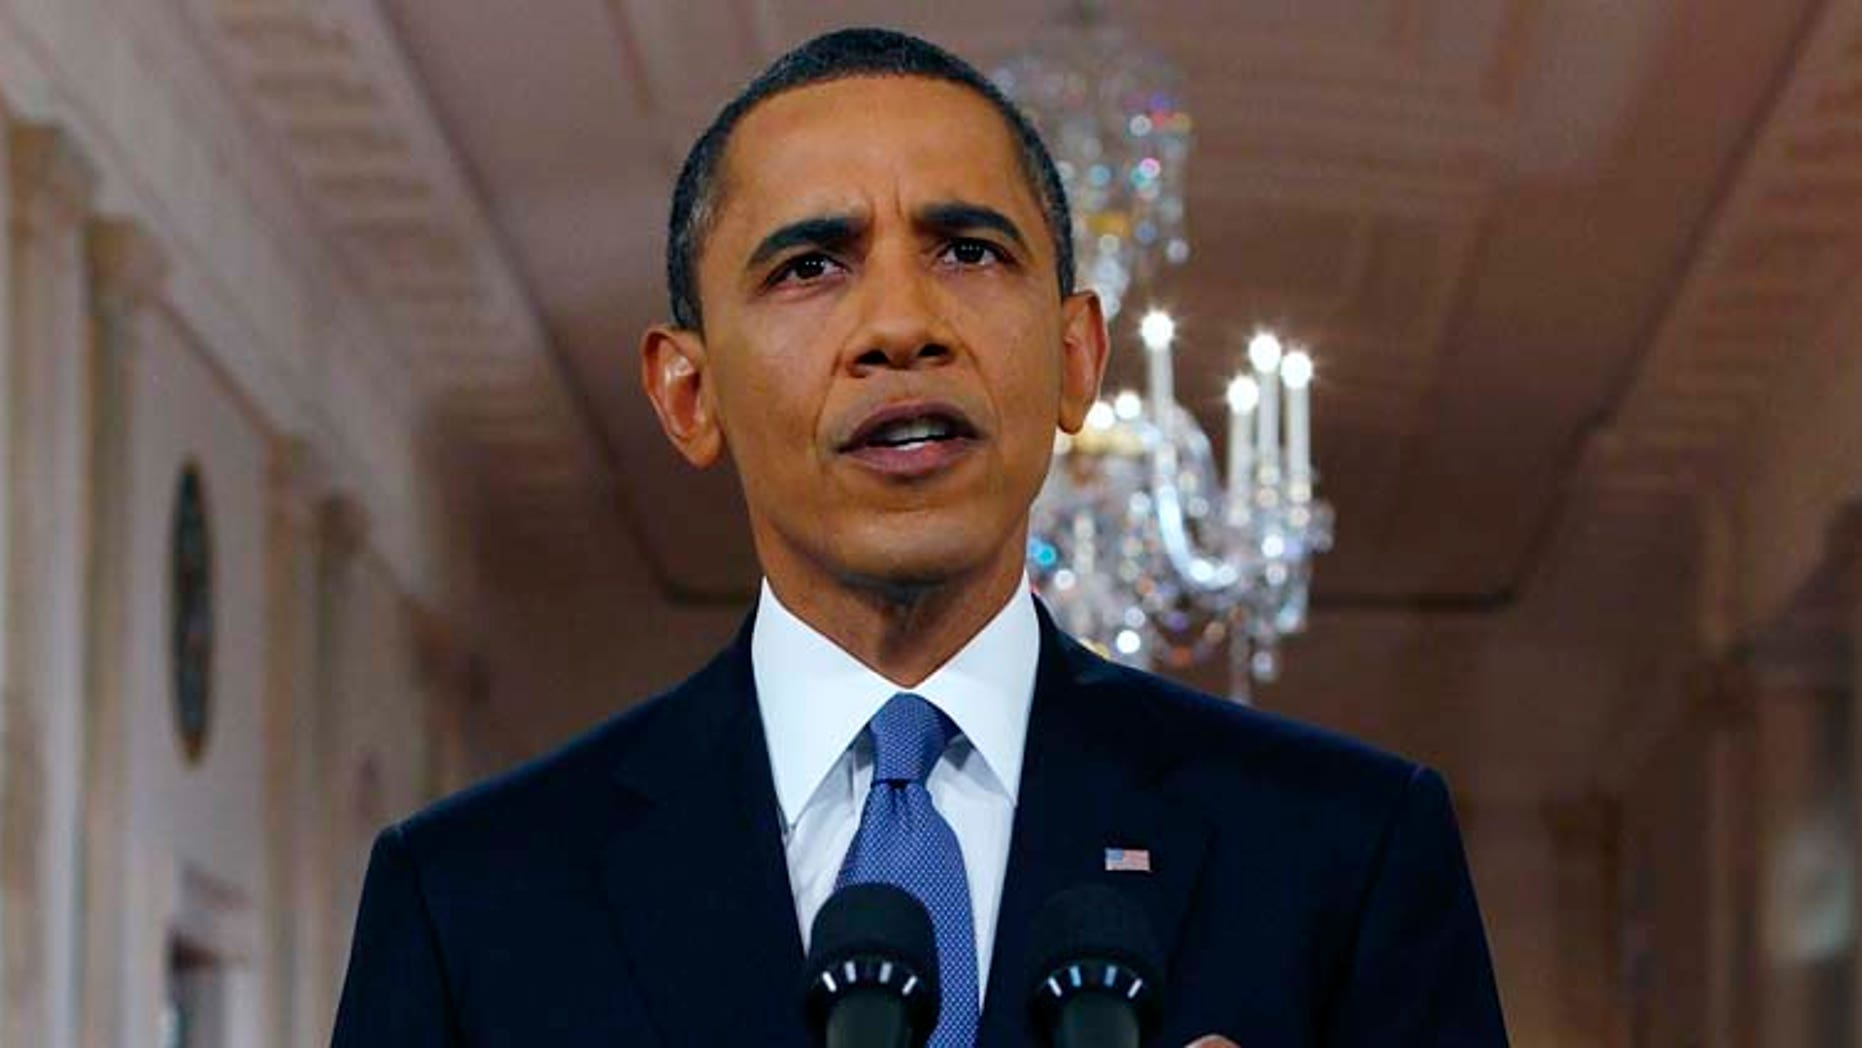 President Barack Obama delivers a televised address from the East Room of the White House in Washington, Wednesday, June 22, 2011 on his plan to drawdown U.S. troops in Afghanistan. (AP Photo/Pablo Martinez Monsivais, Pool)